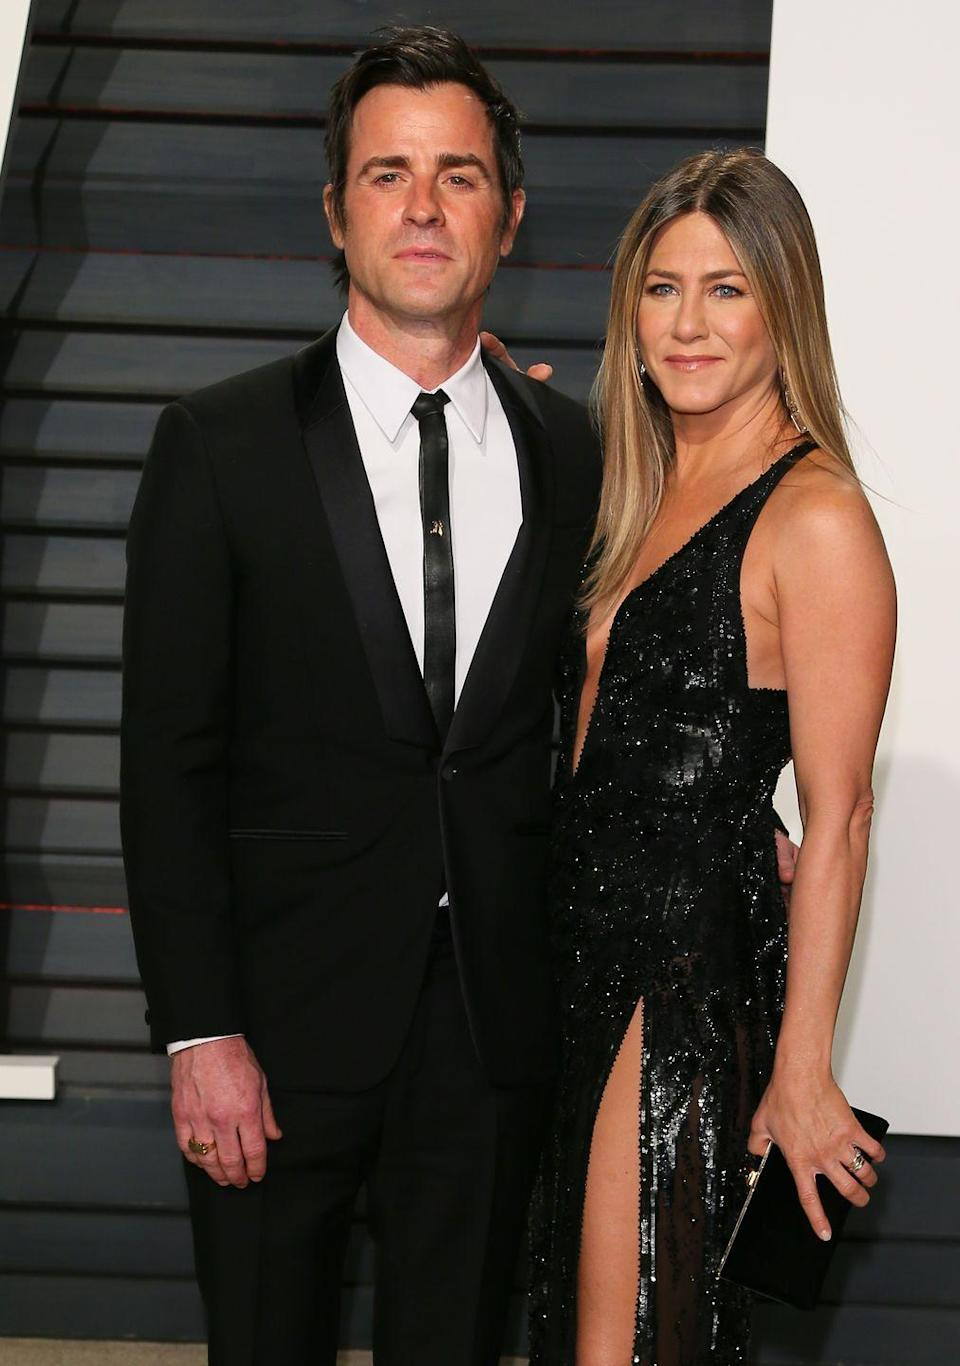 """<p>Jennifer Aniston and Justin Theroux <a href=""""https://www.marieclaire.com/celebrity/a18203785/jennifer-aniston-justin-theroux-divorce/"""" rel=""""nofollow noopener"""" target=""""_blank"""" data-ylk=""""slk:announce"""" class=""""link rapid-noclick-resp"""">announce</a> their separation. Twitter explodes with hope that Aniston and Pitt are getting back together, mostly in the form of Rachel Green GIFs.</p>"""